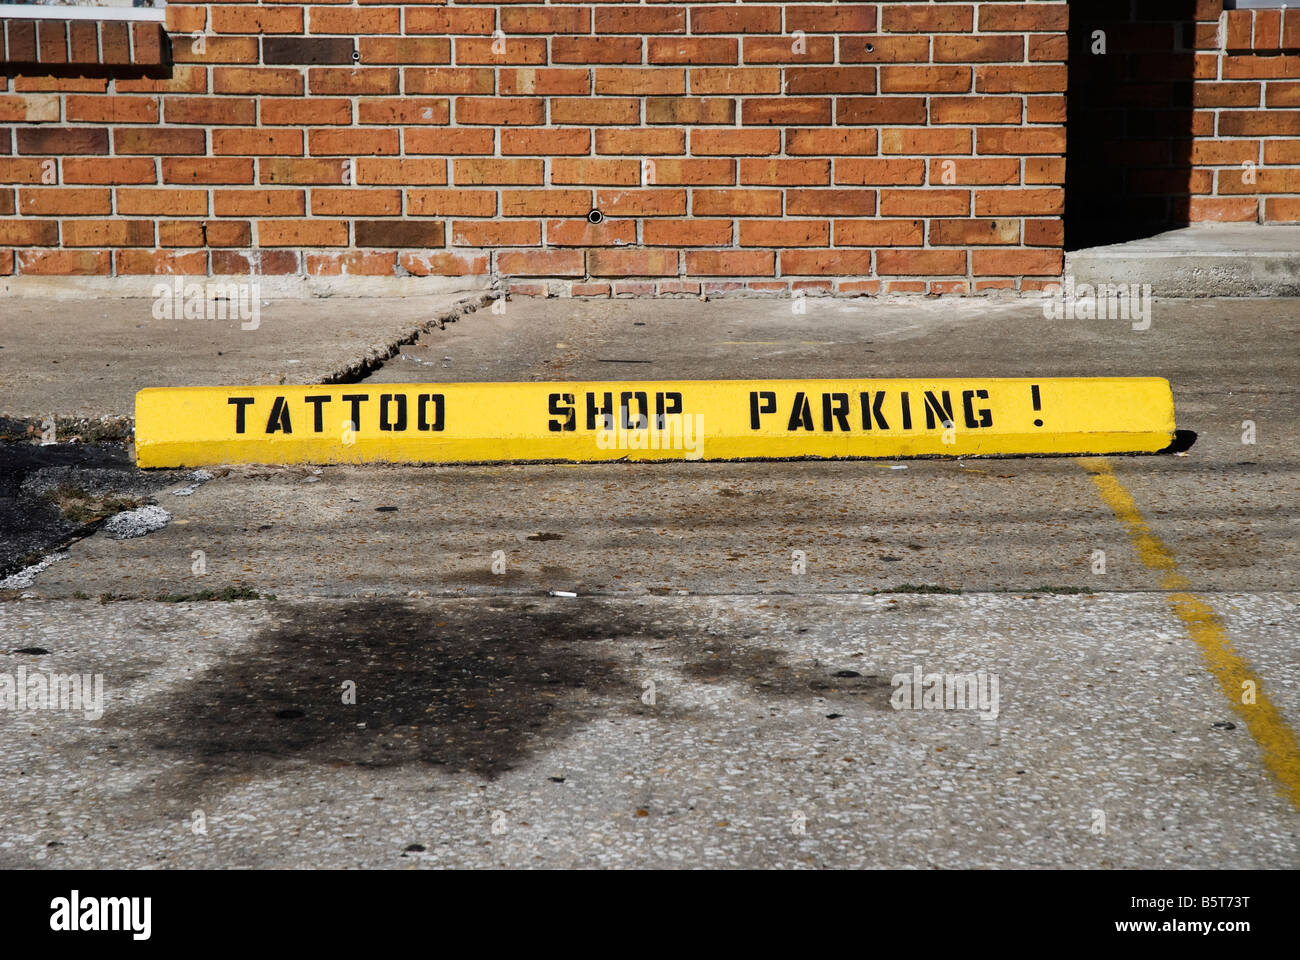 parking designation for tattoo shop - Stock Image